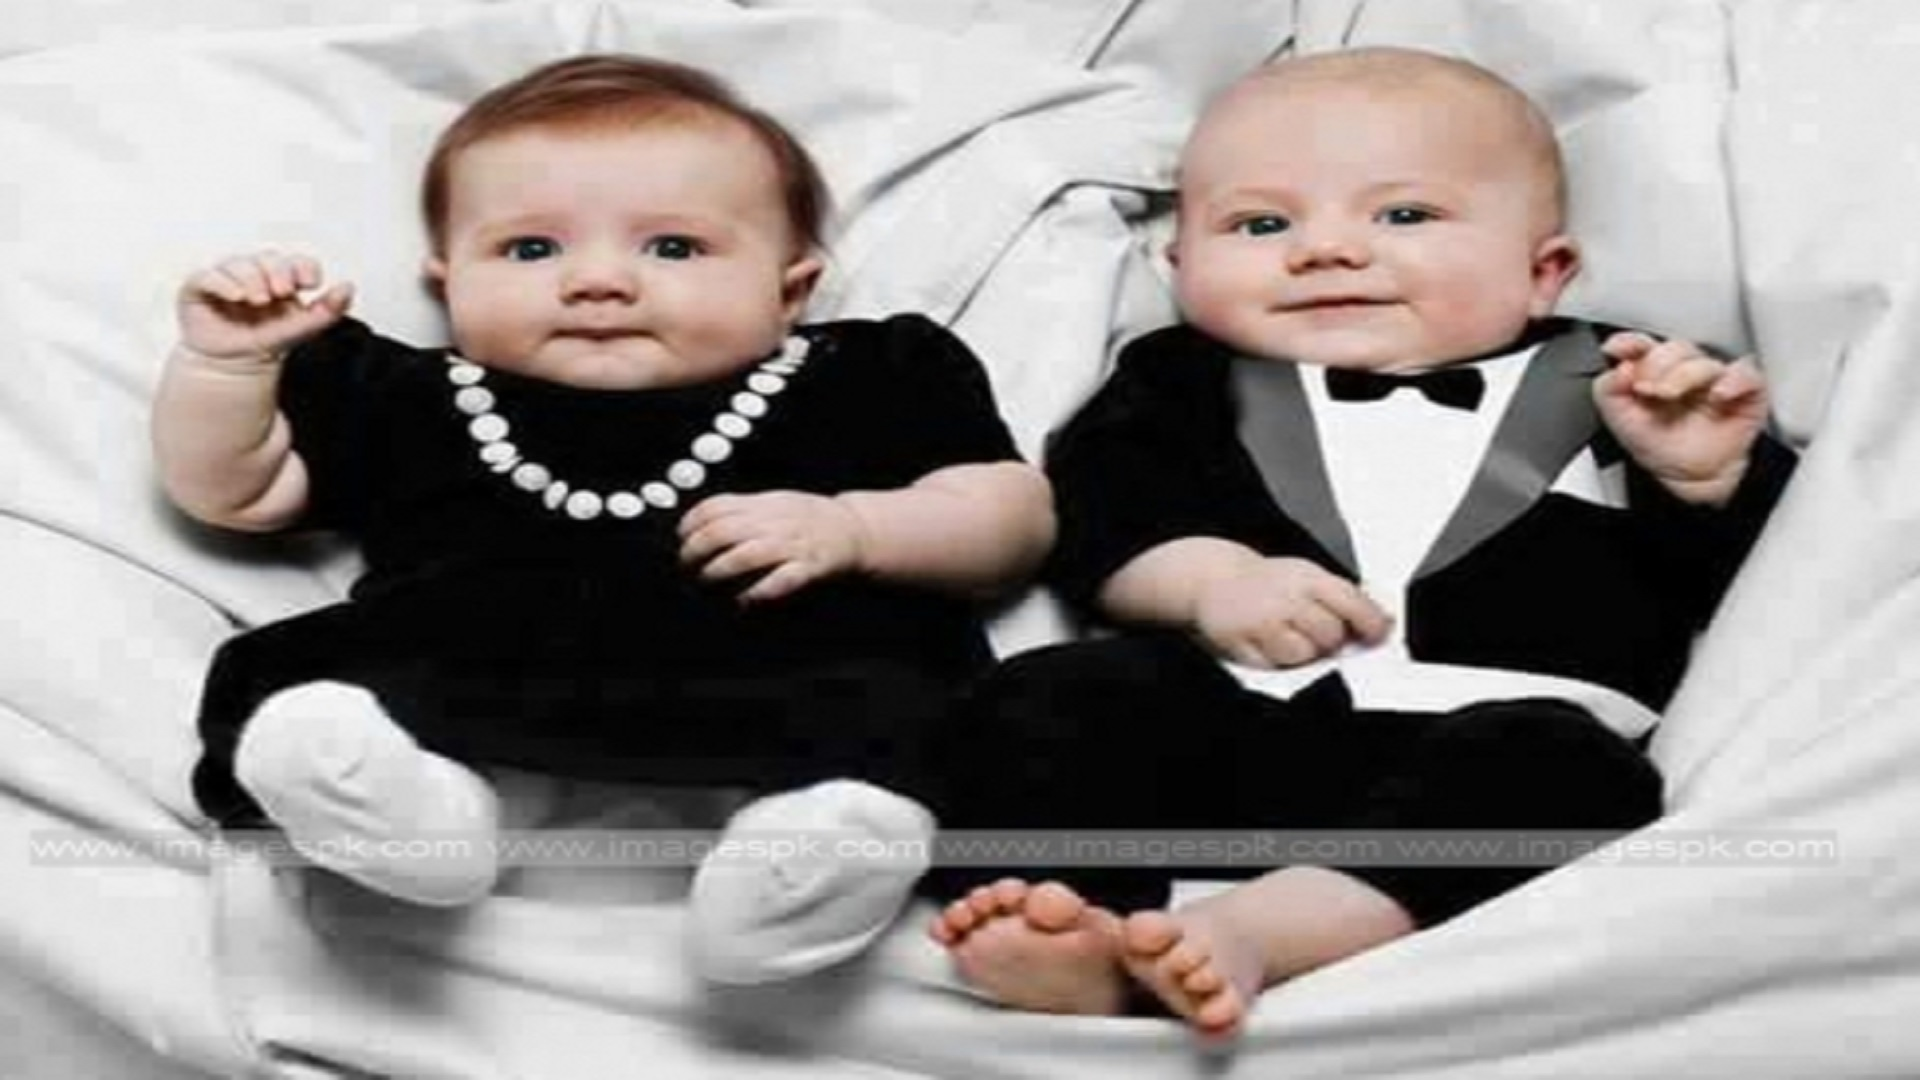 Cute Twin Baby Boy And Girl Wallpapers Sweet Twins Baby Hd Wallpaper Free Hd Wallpaper